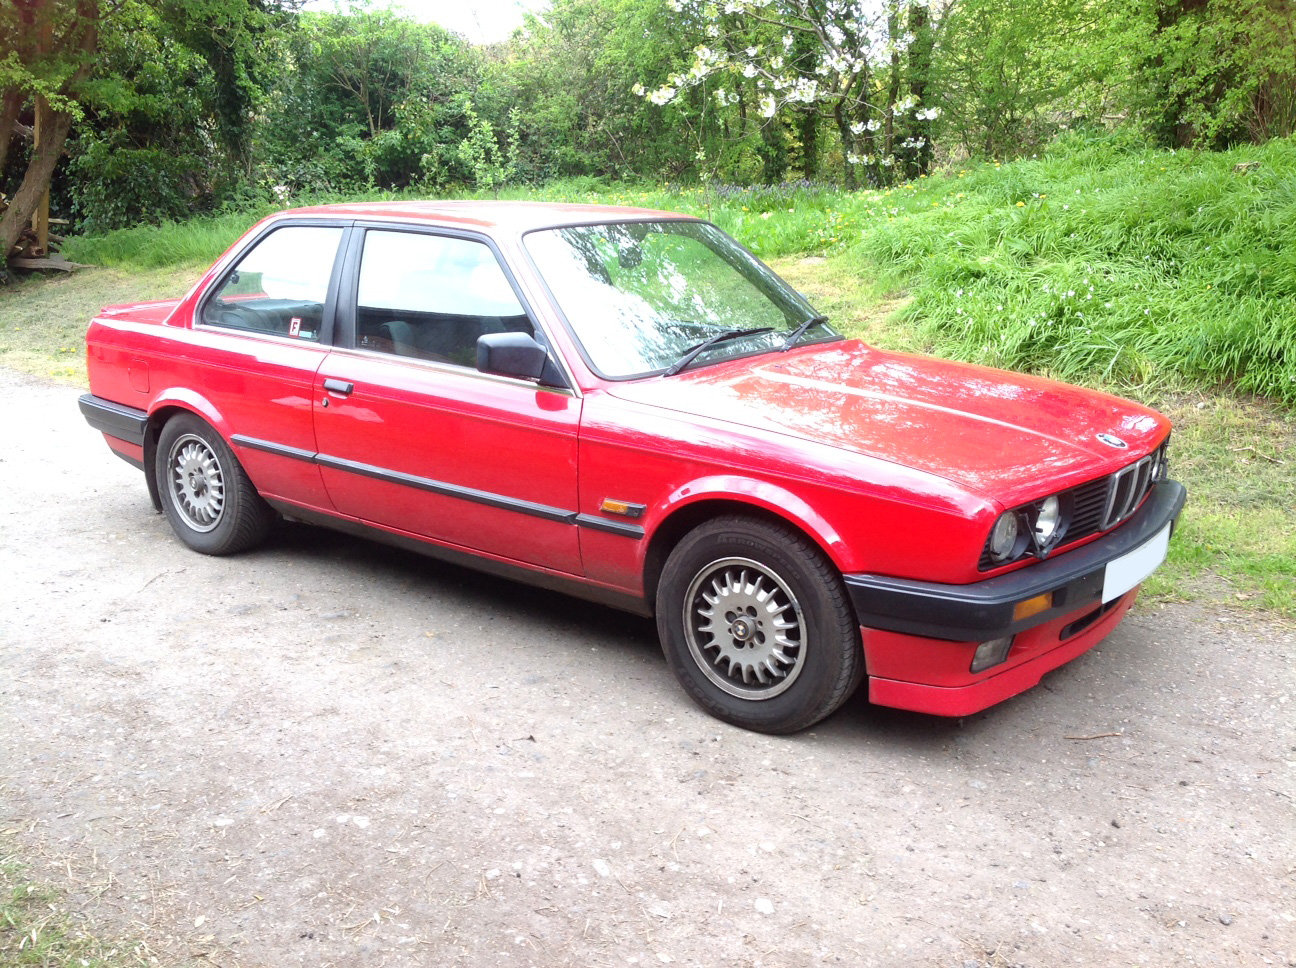 1990 Red BMW 325i For Sale (picture 1 of 6)